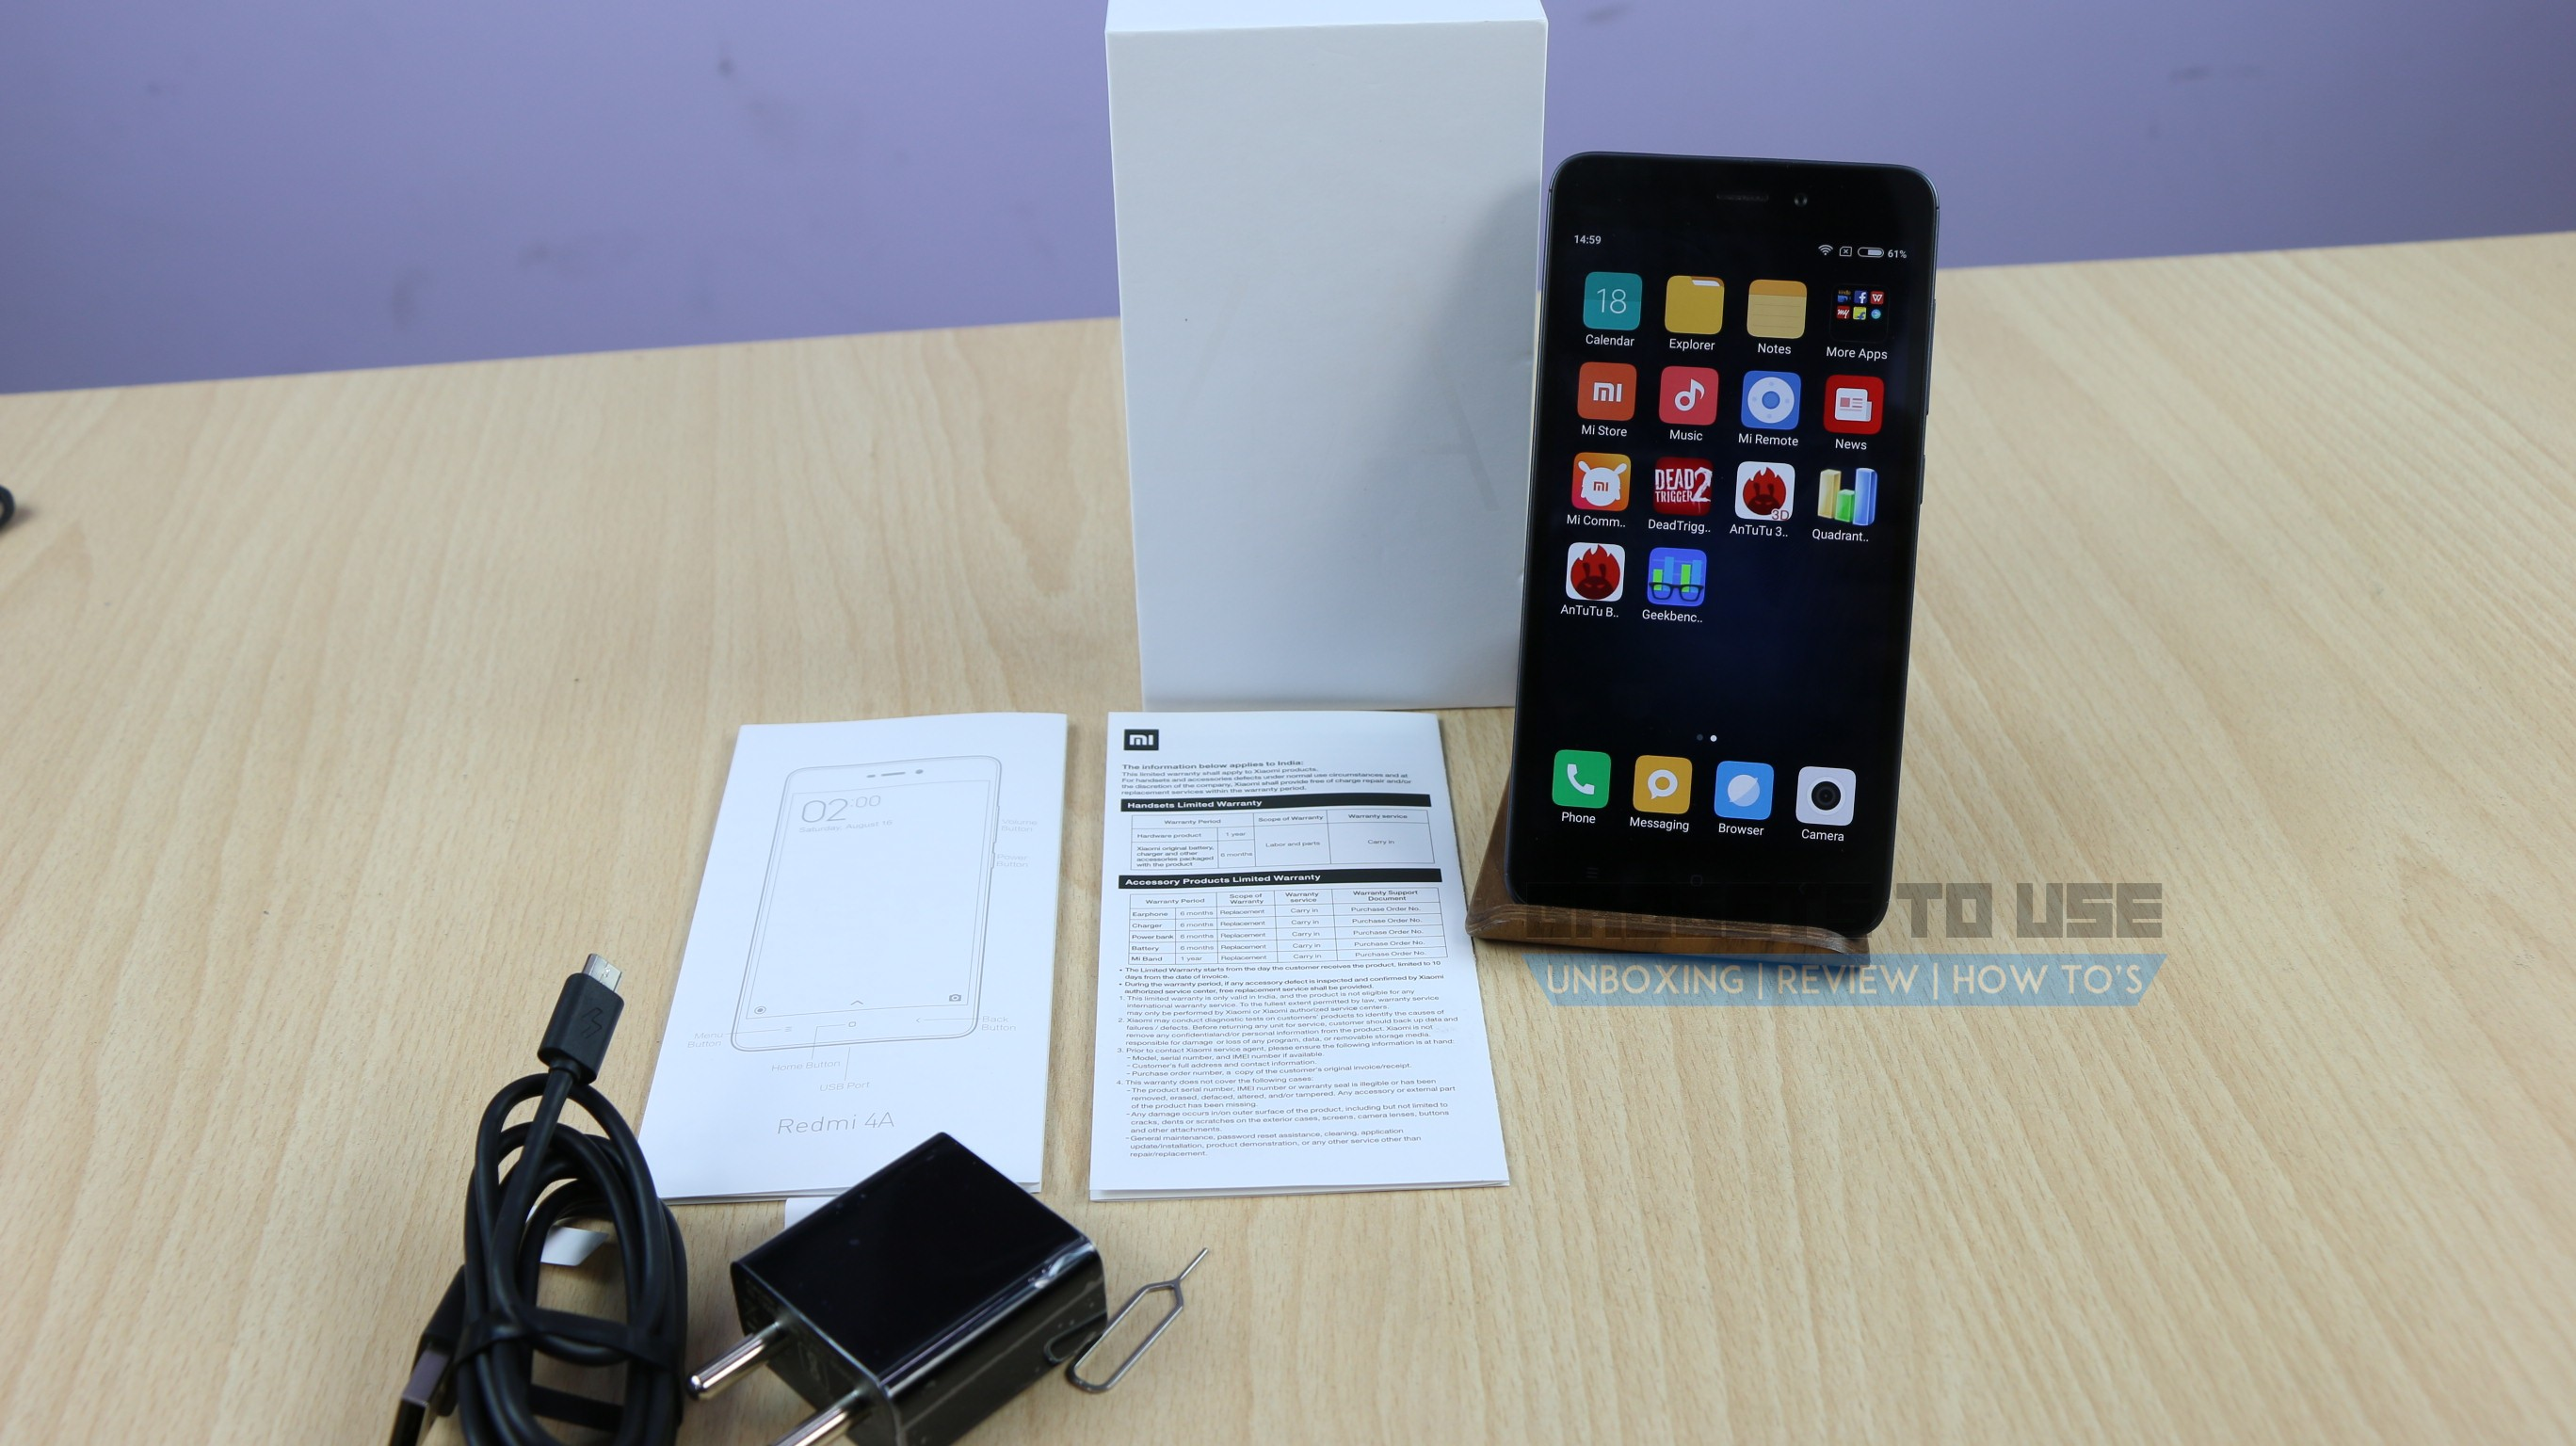 Xiaomi Redmi 4a Hands On Overview Specs And Price